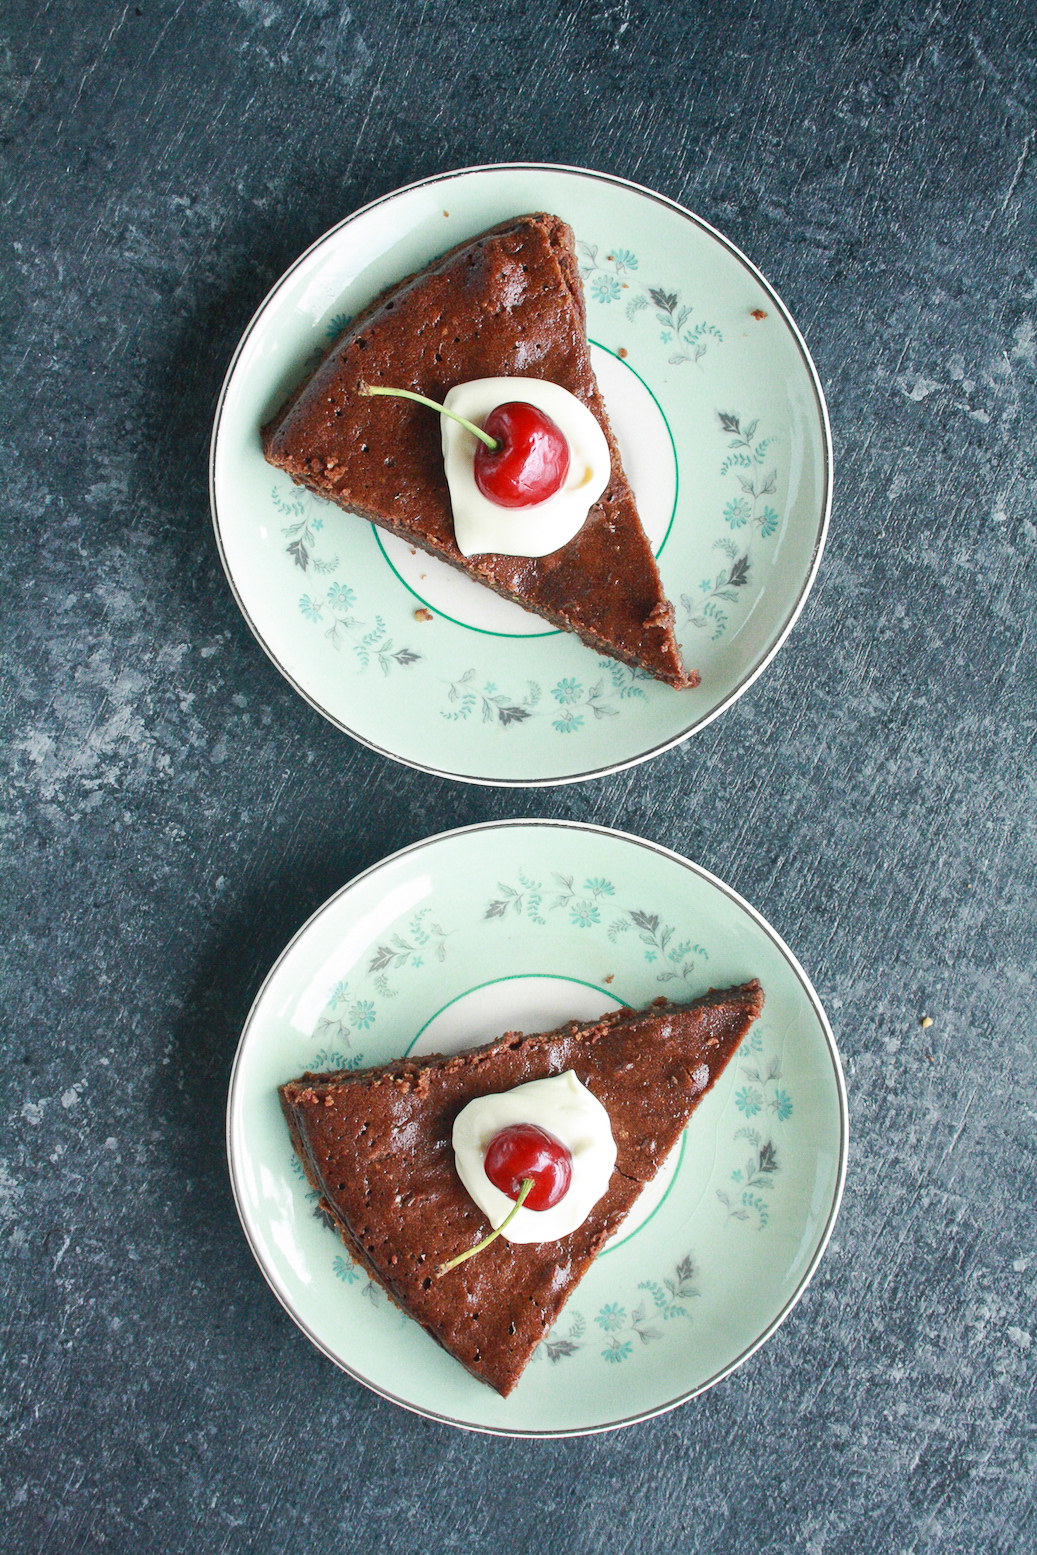 Moist and fudgy gluten-free cake made with buckwheat flour and hazelnuts